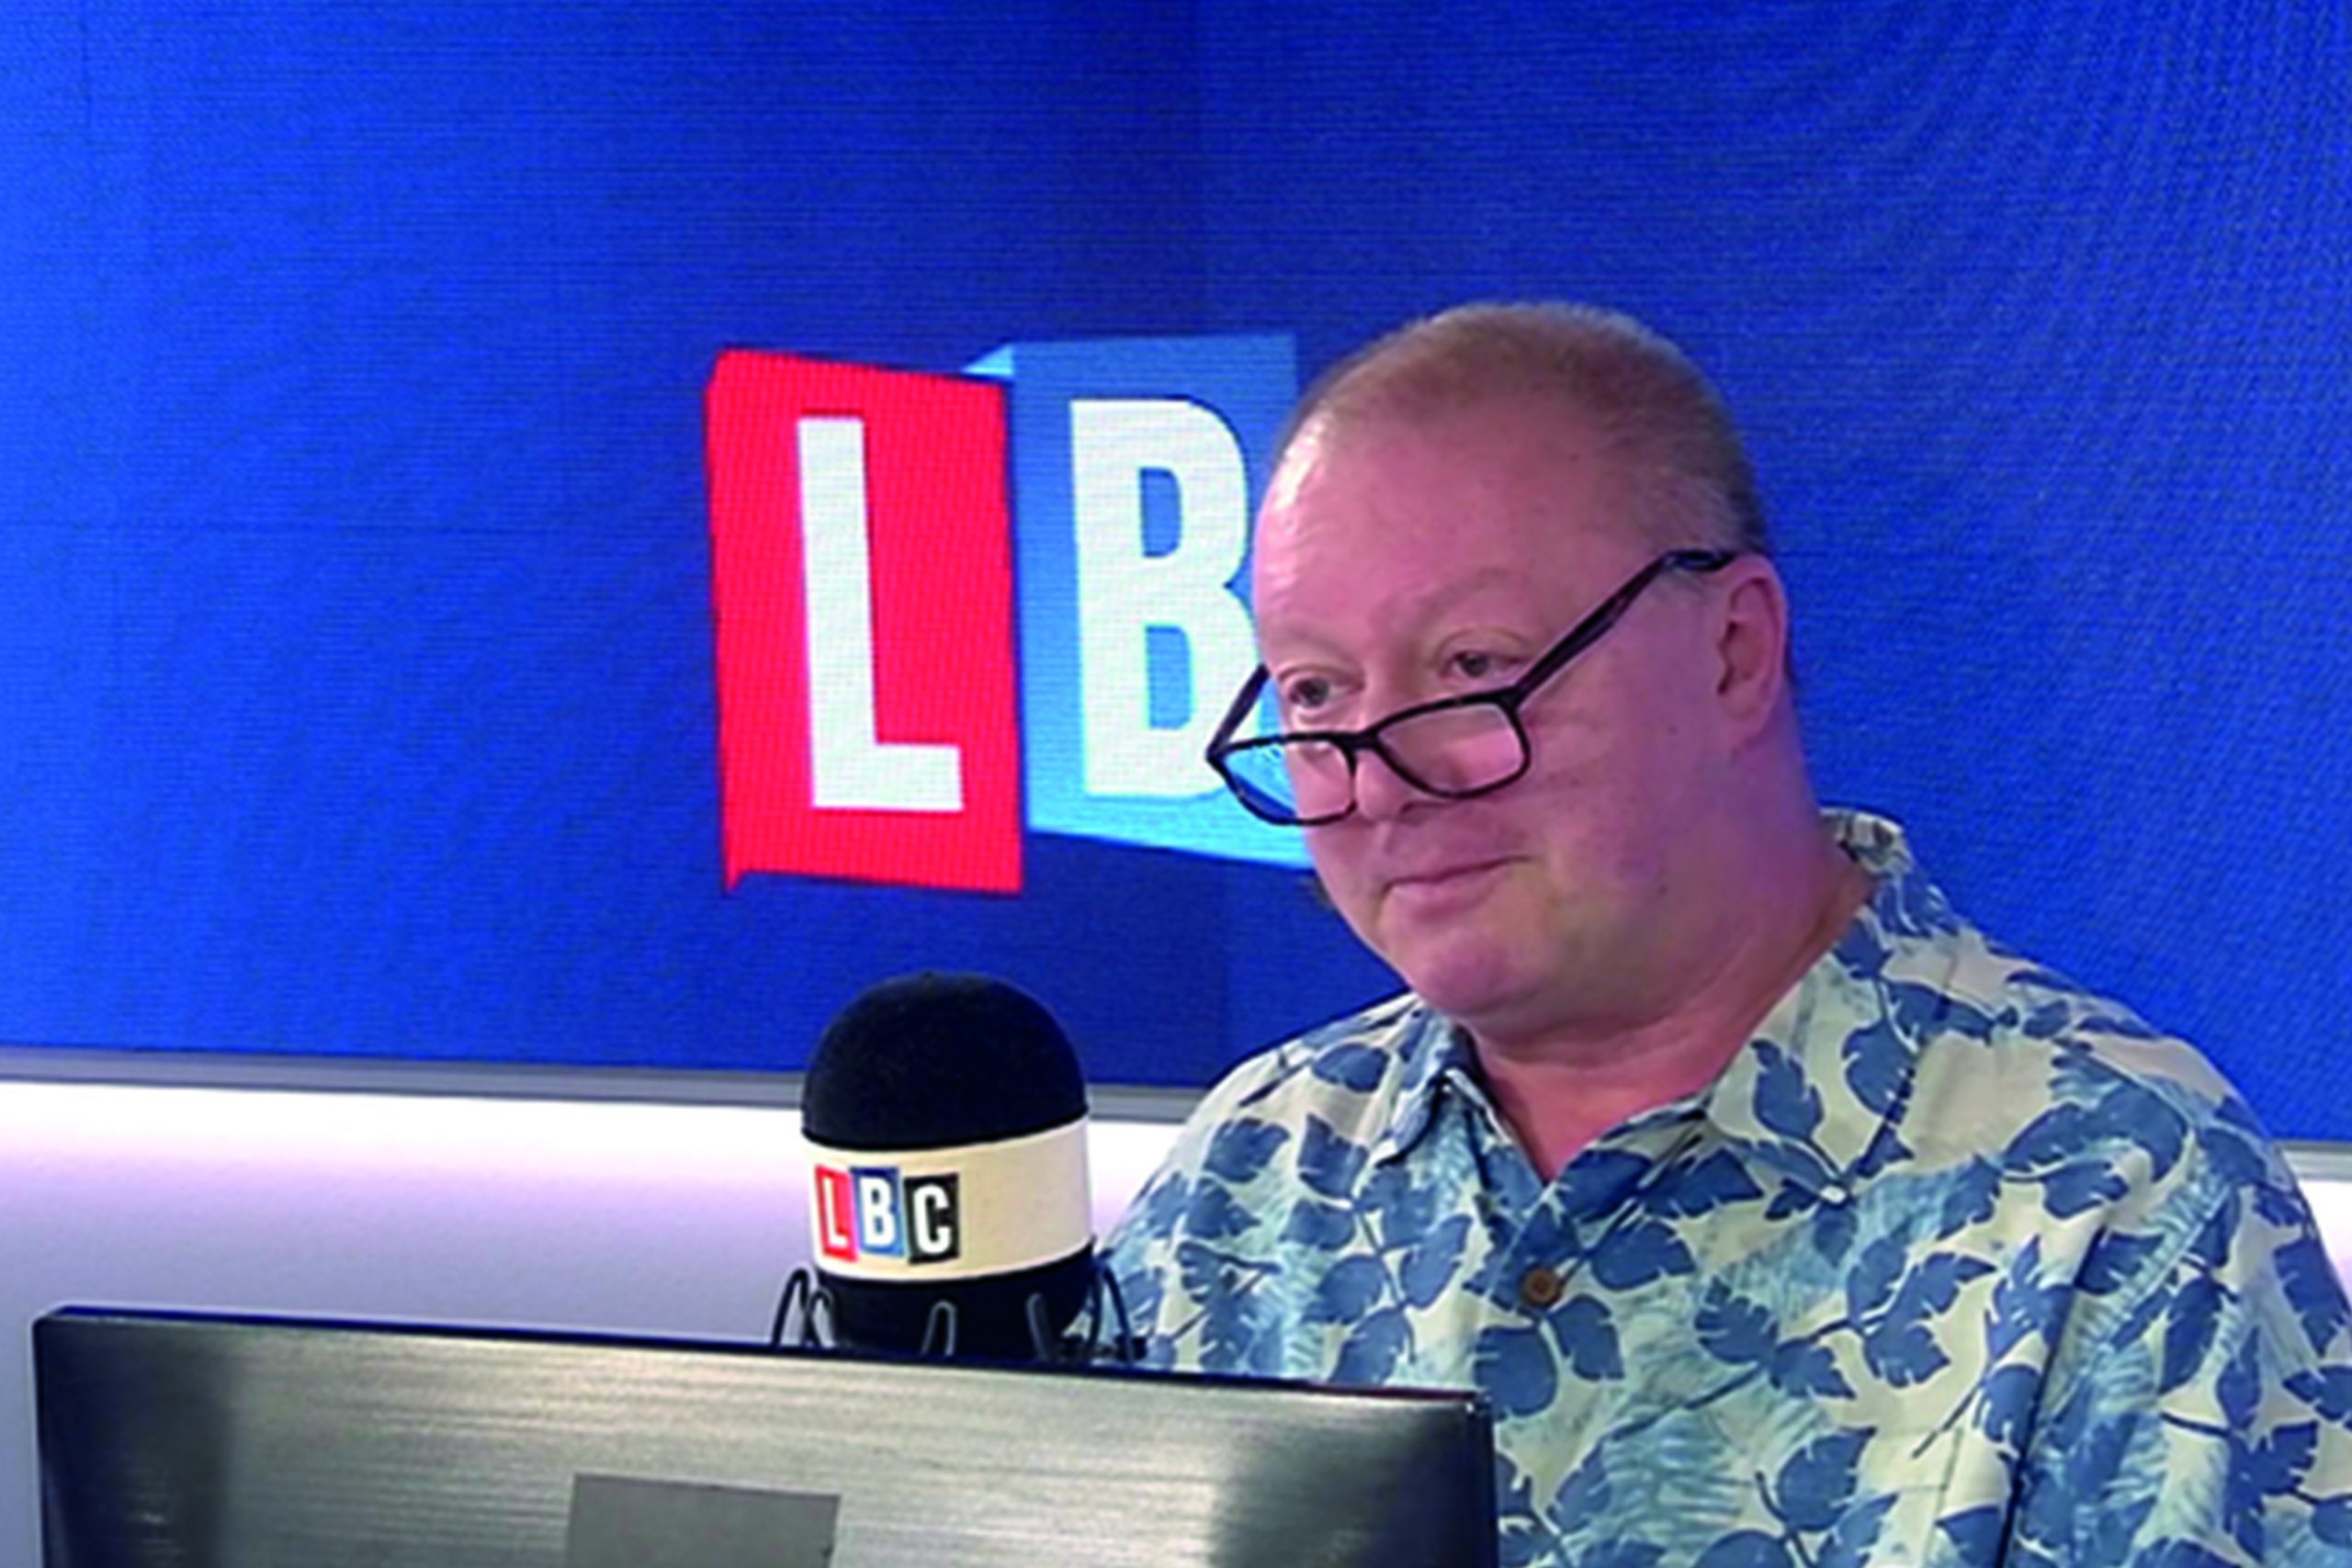 LBC Gave You The Chance To Own A Special Steve Allen Tea Towel